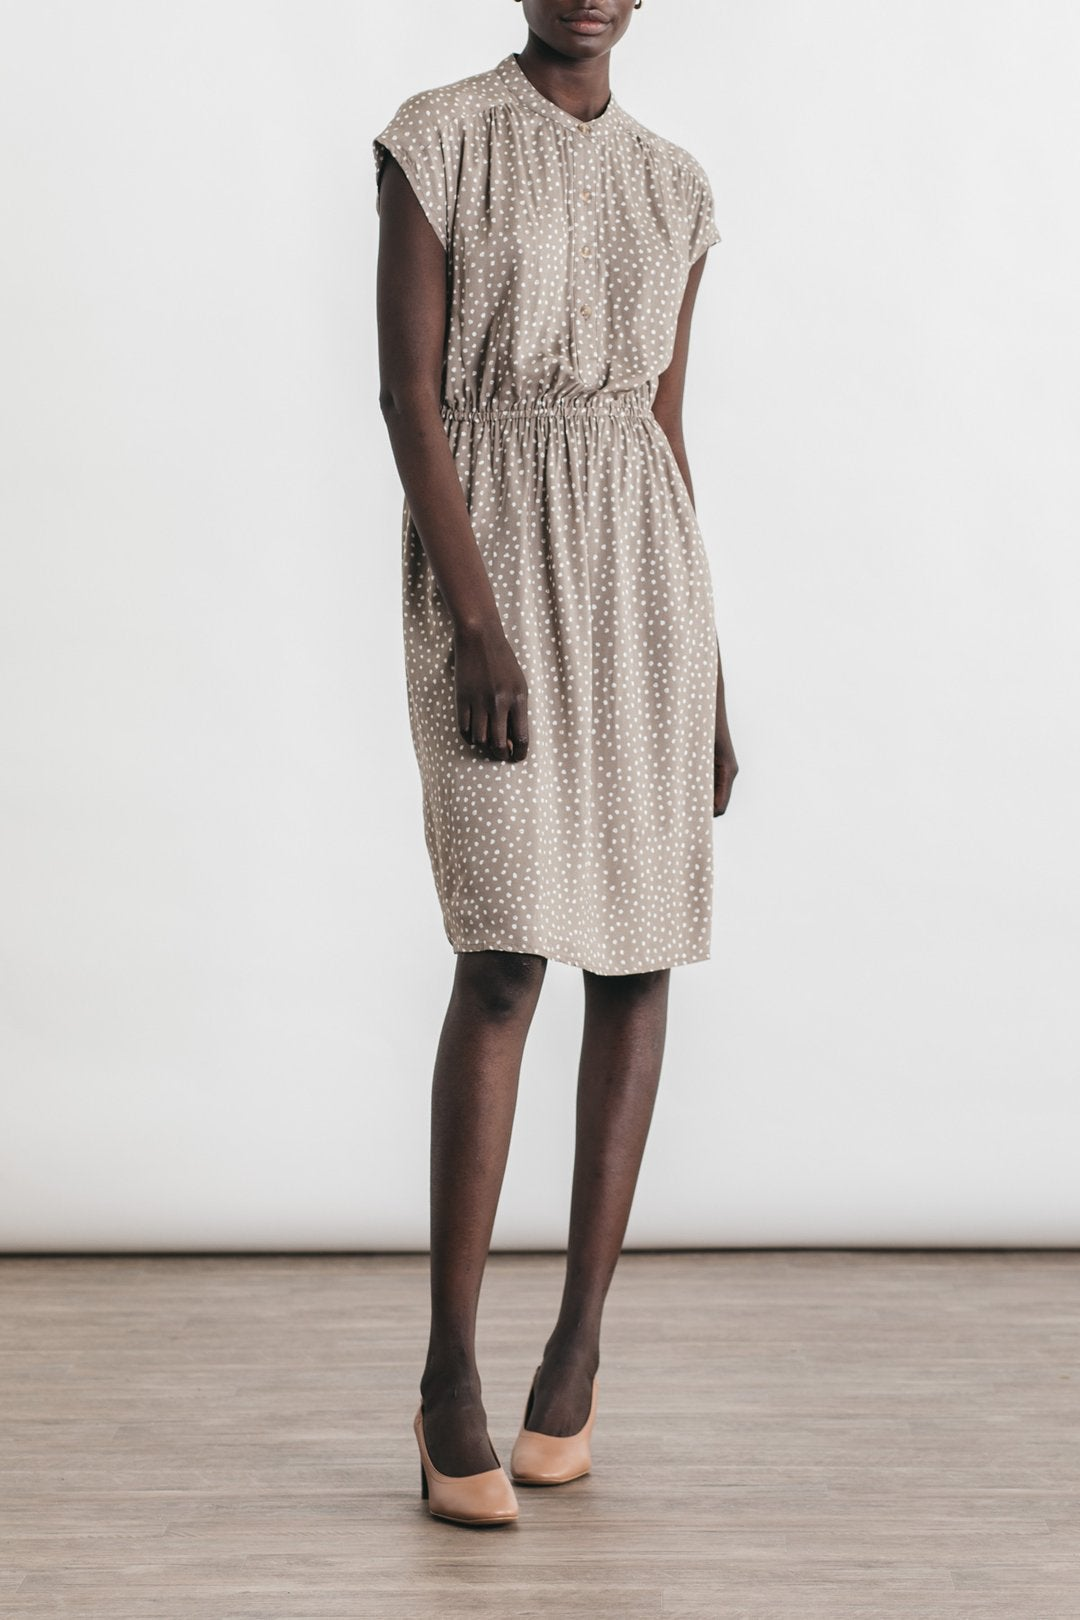 Image of Bridge + Burn Lorane Dress - Tan Dot